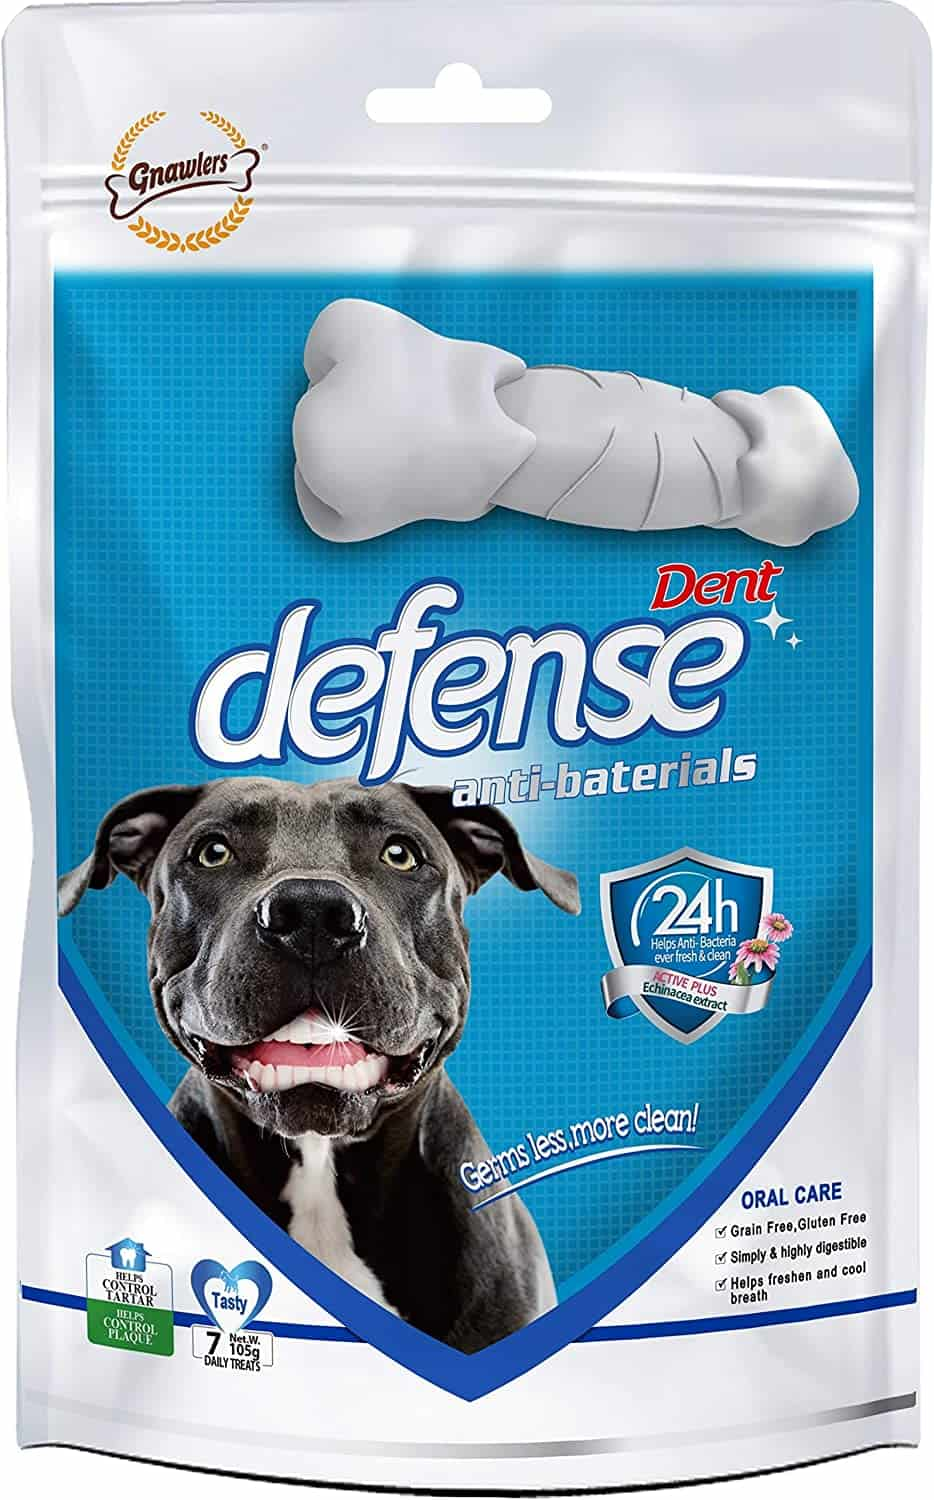 Gnawlers Defense Dent Medium 105 g